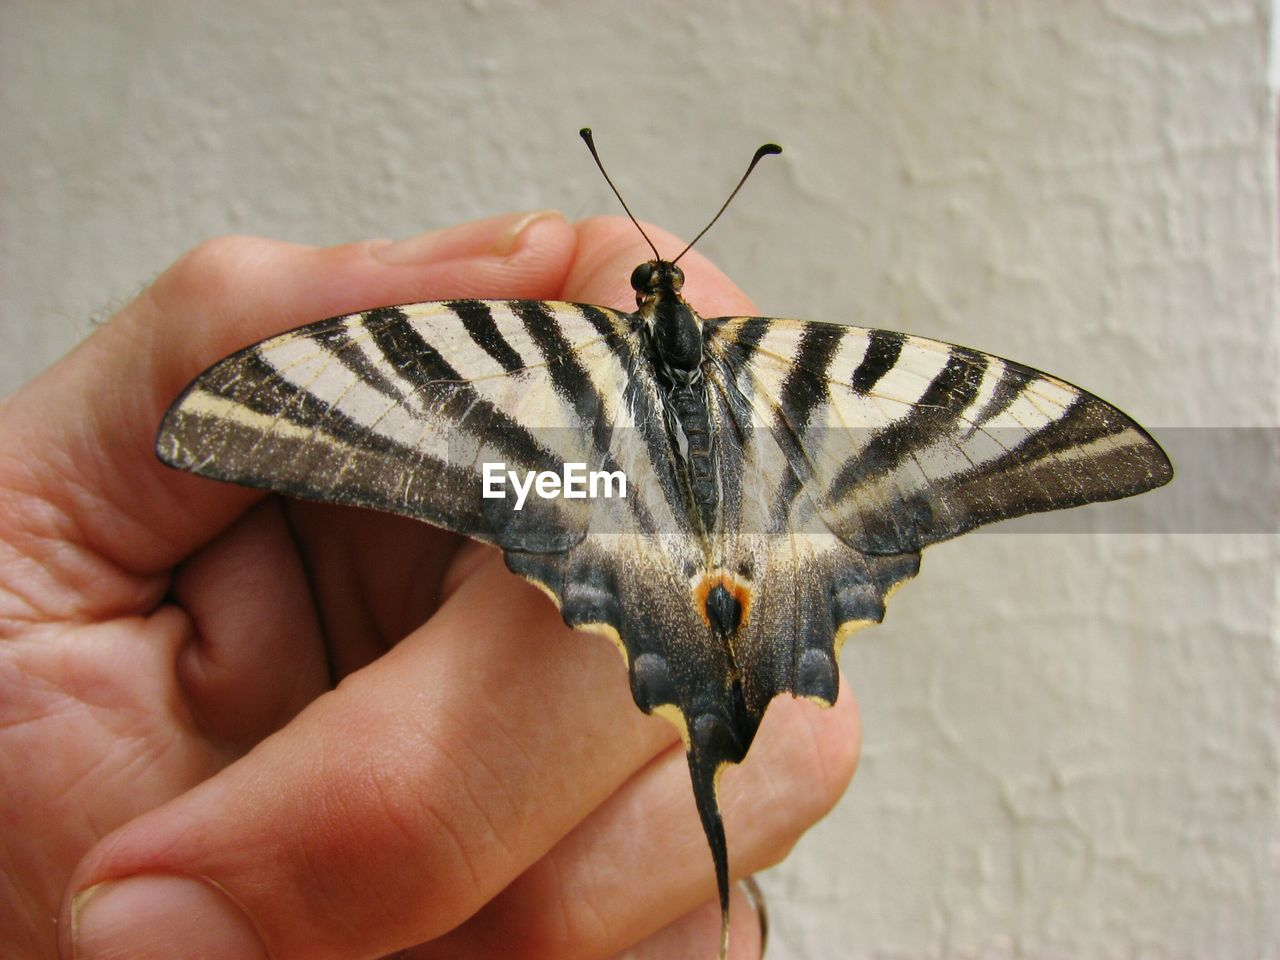 Cropped Hand With Swallowtail Butterfly Against Wall